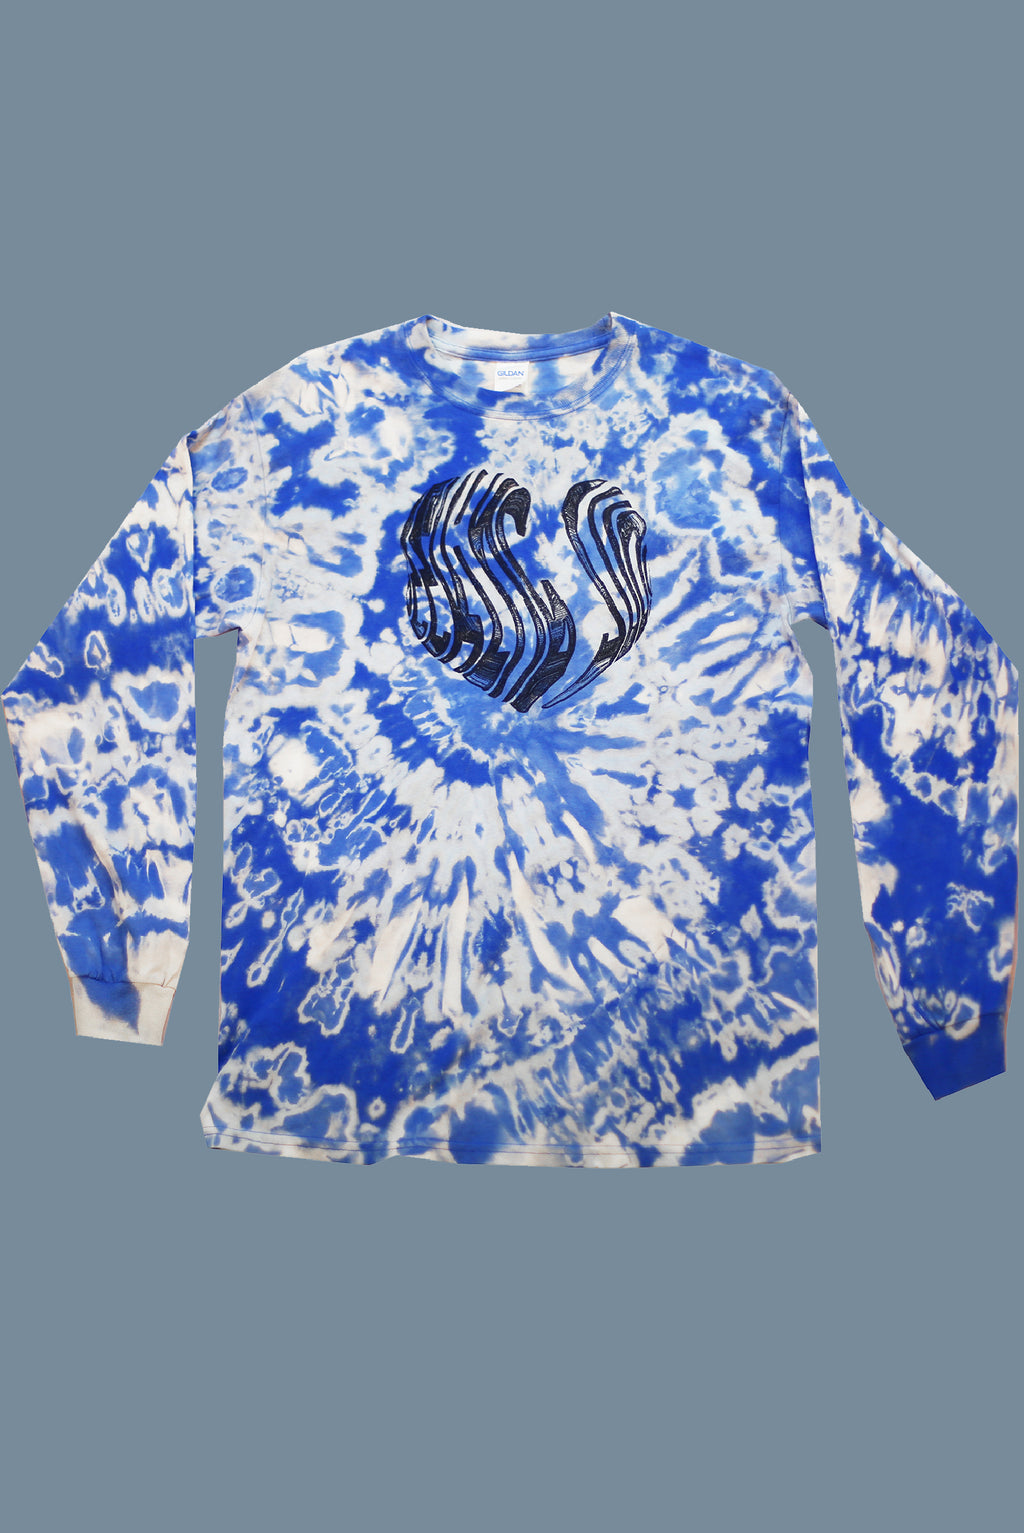 'Luv SJ' Blue Tie Dye long sleeve